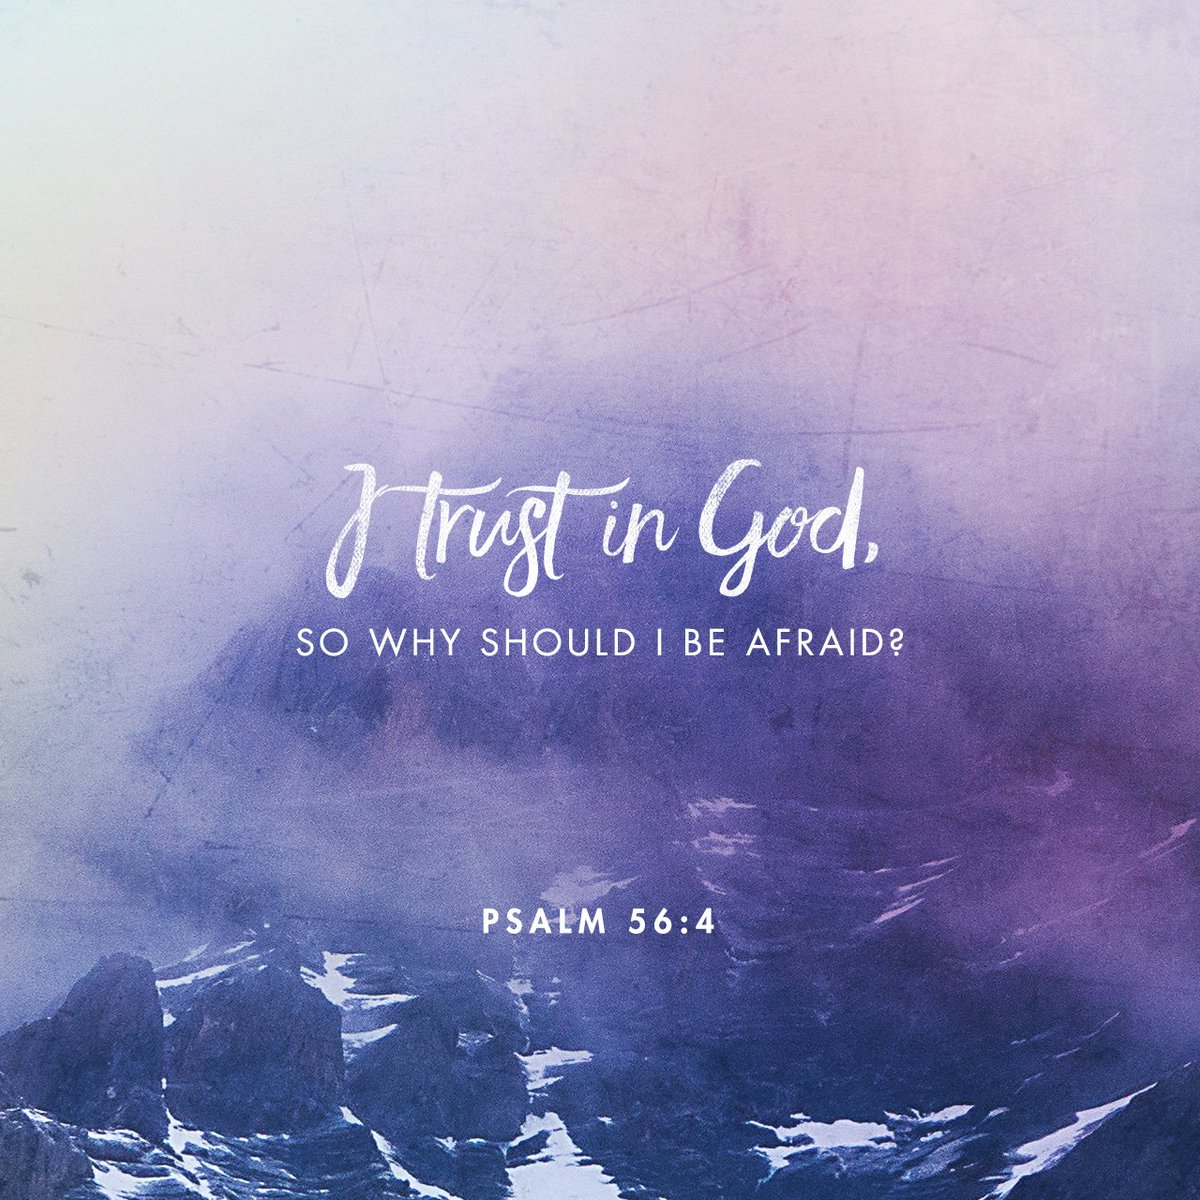 I praise God for what he has promised. I trust in God, so why should I be afraid? What can… https://t.co/4UXZECXJIy https://t.co/2OB0XQwqM6